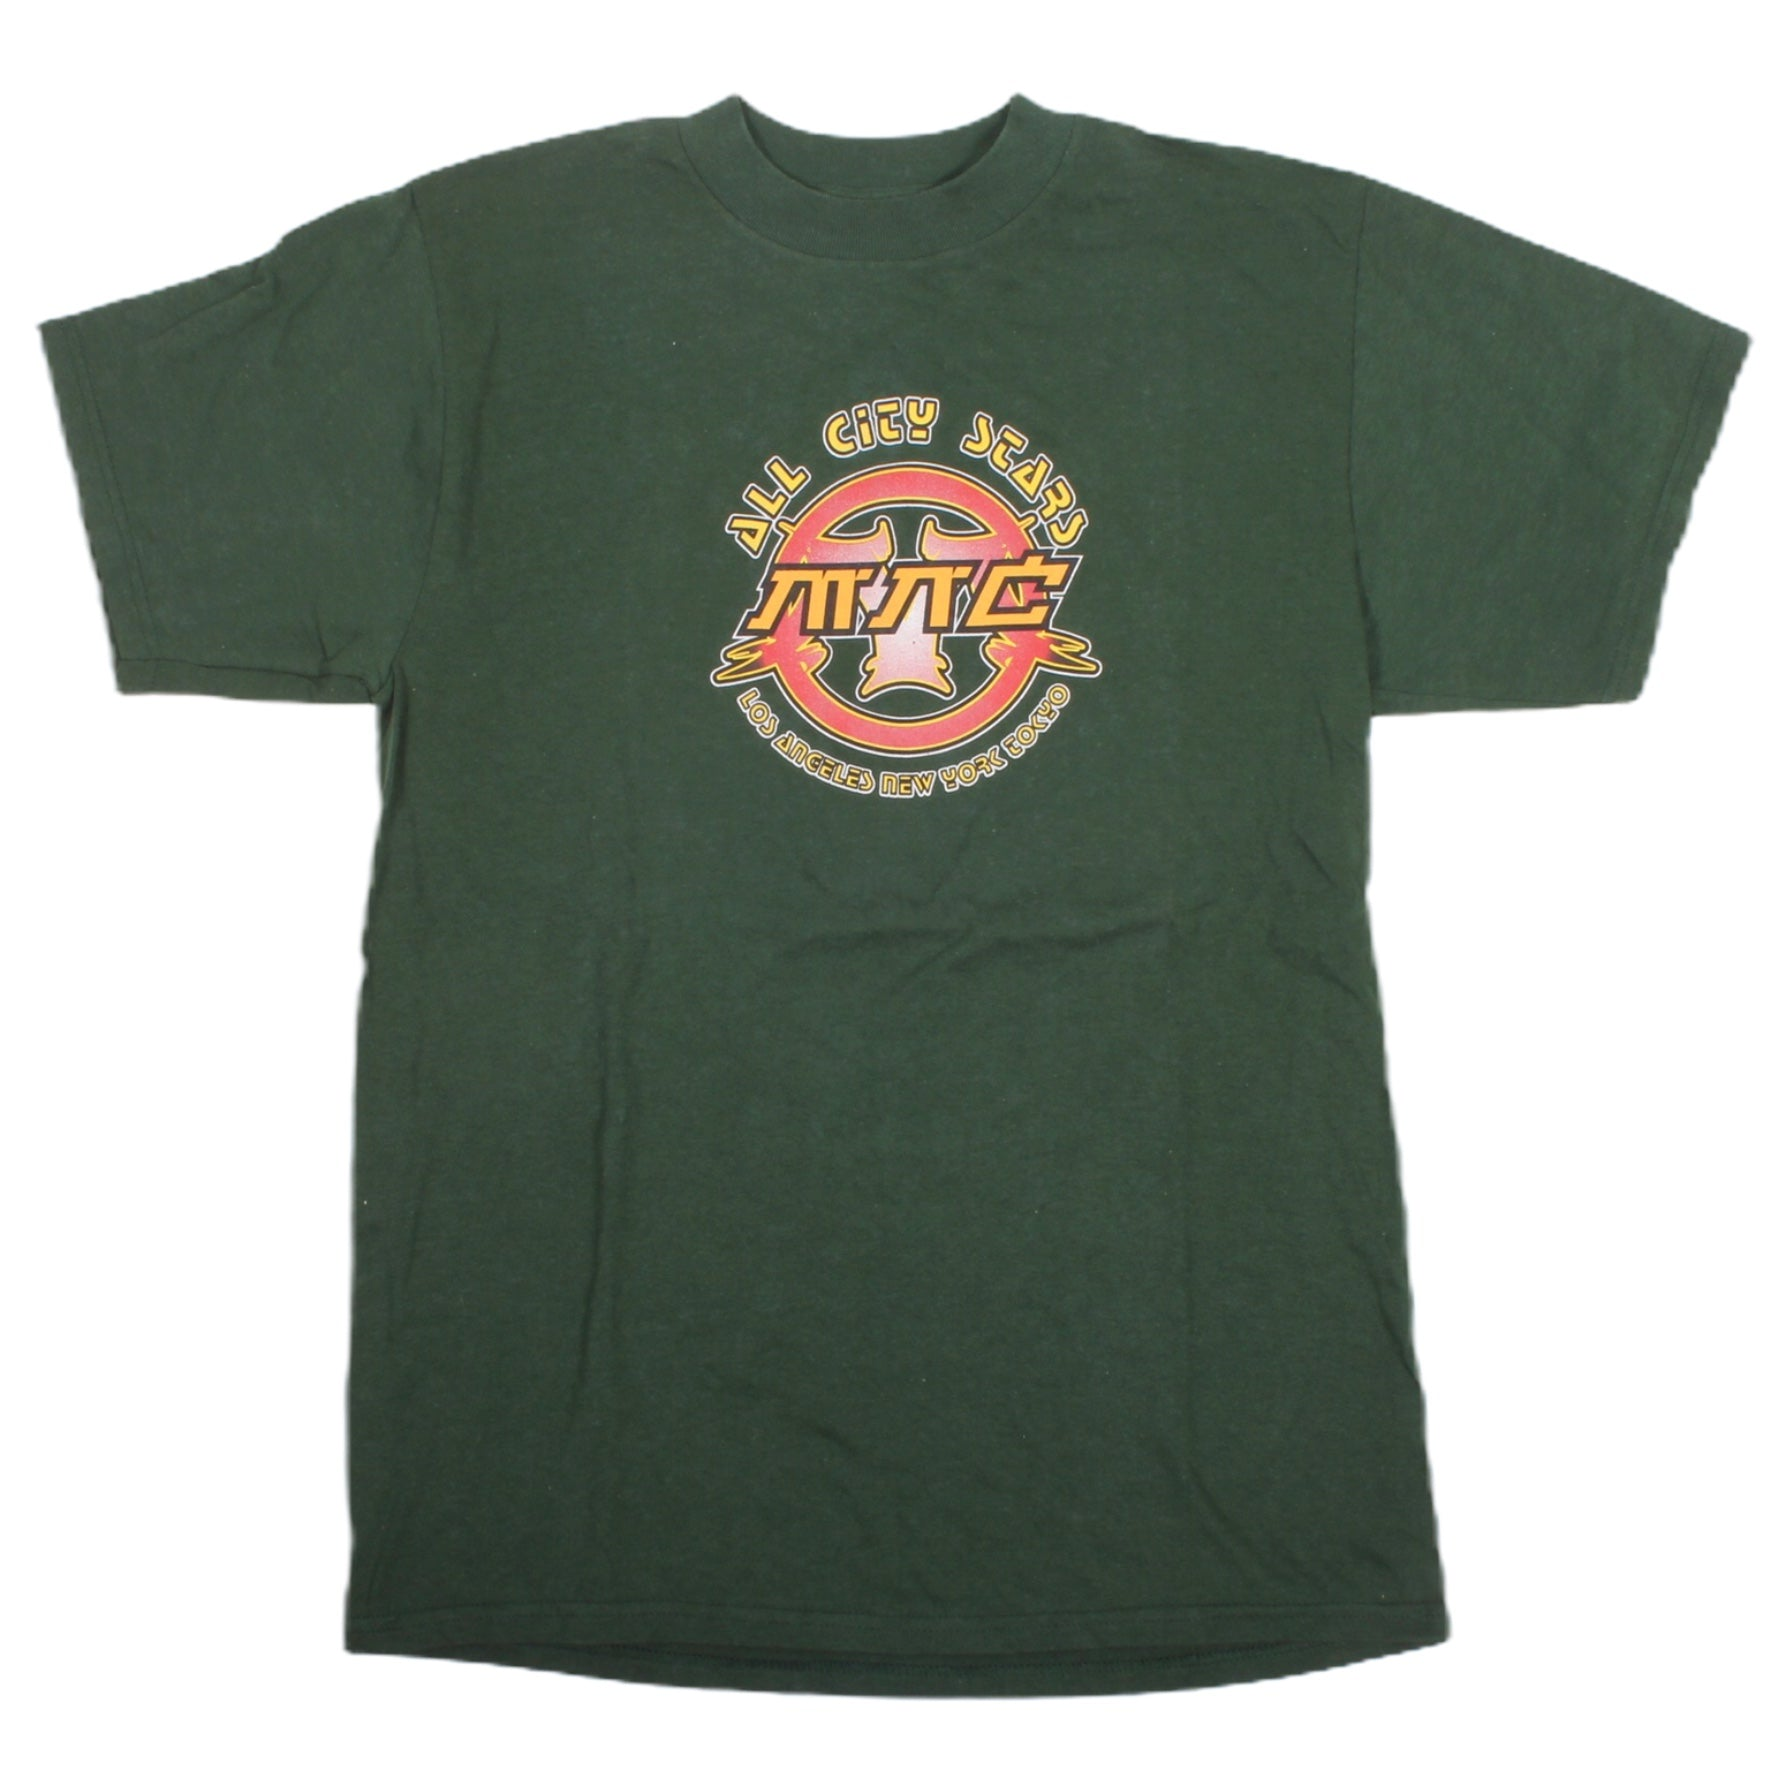 Overripe Menace Tee All City Stars Green Medium 1998